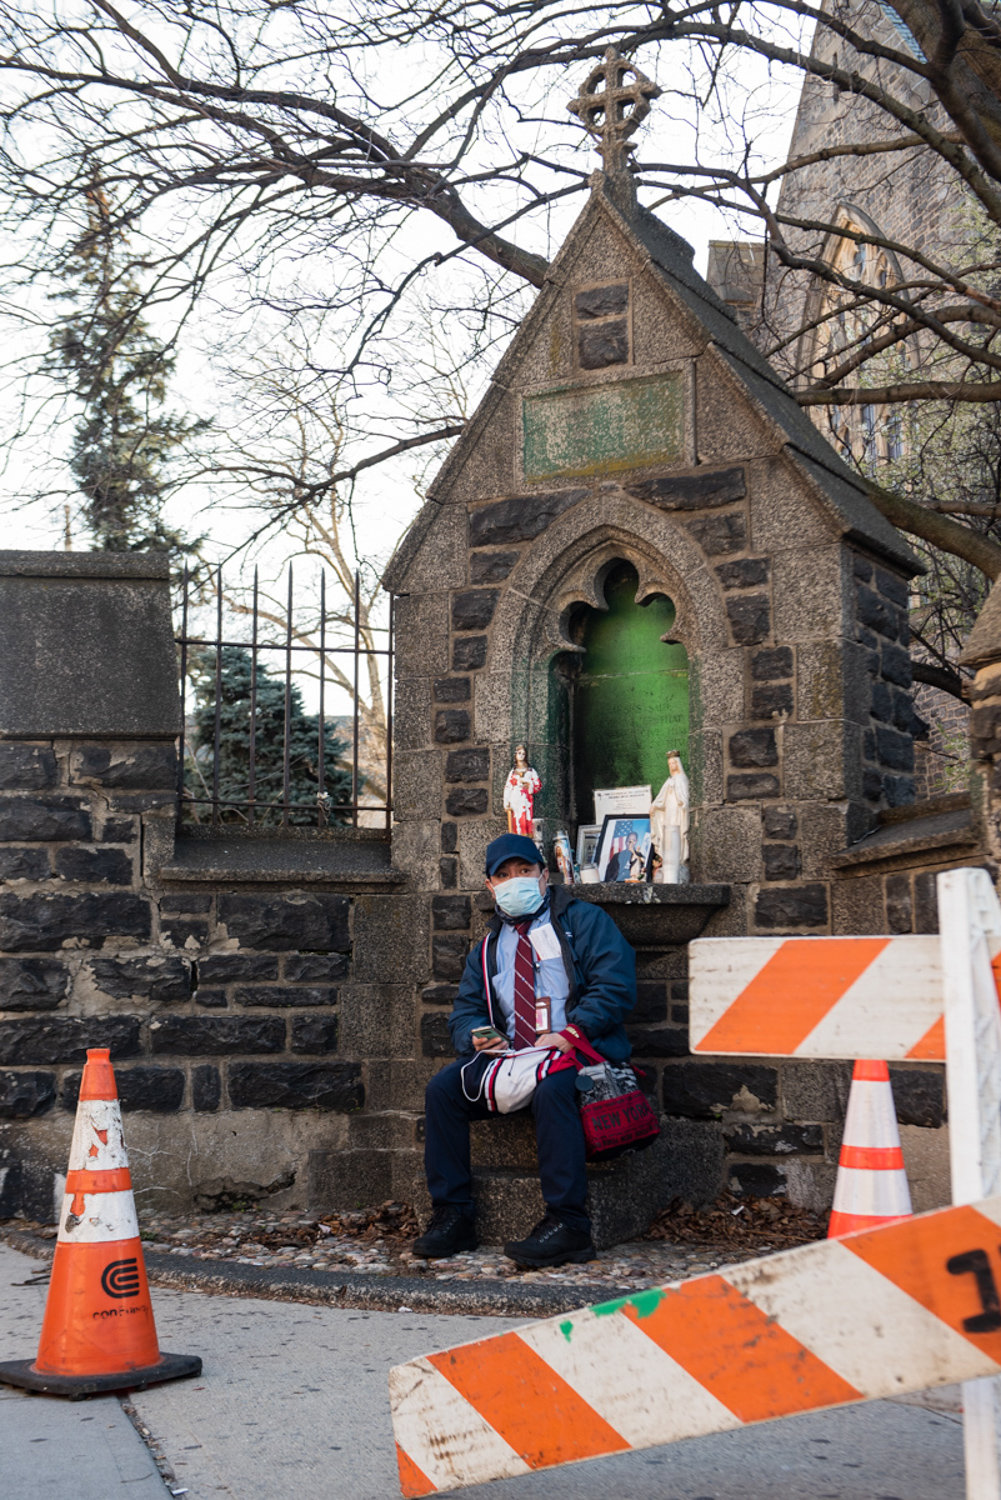 Frida Sterenberg photographed an MTA worker sitting on a stoop outside the Episcopal Church of the Mediator during a walk around the neighborhood, which is part of an ongoing project about how the area has changed as a result of the state's shutdown in response to the coronavirus pandemic